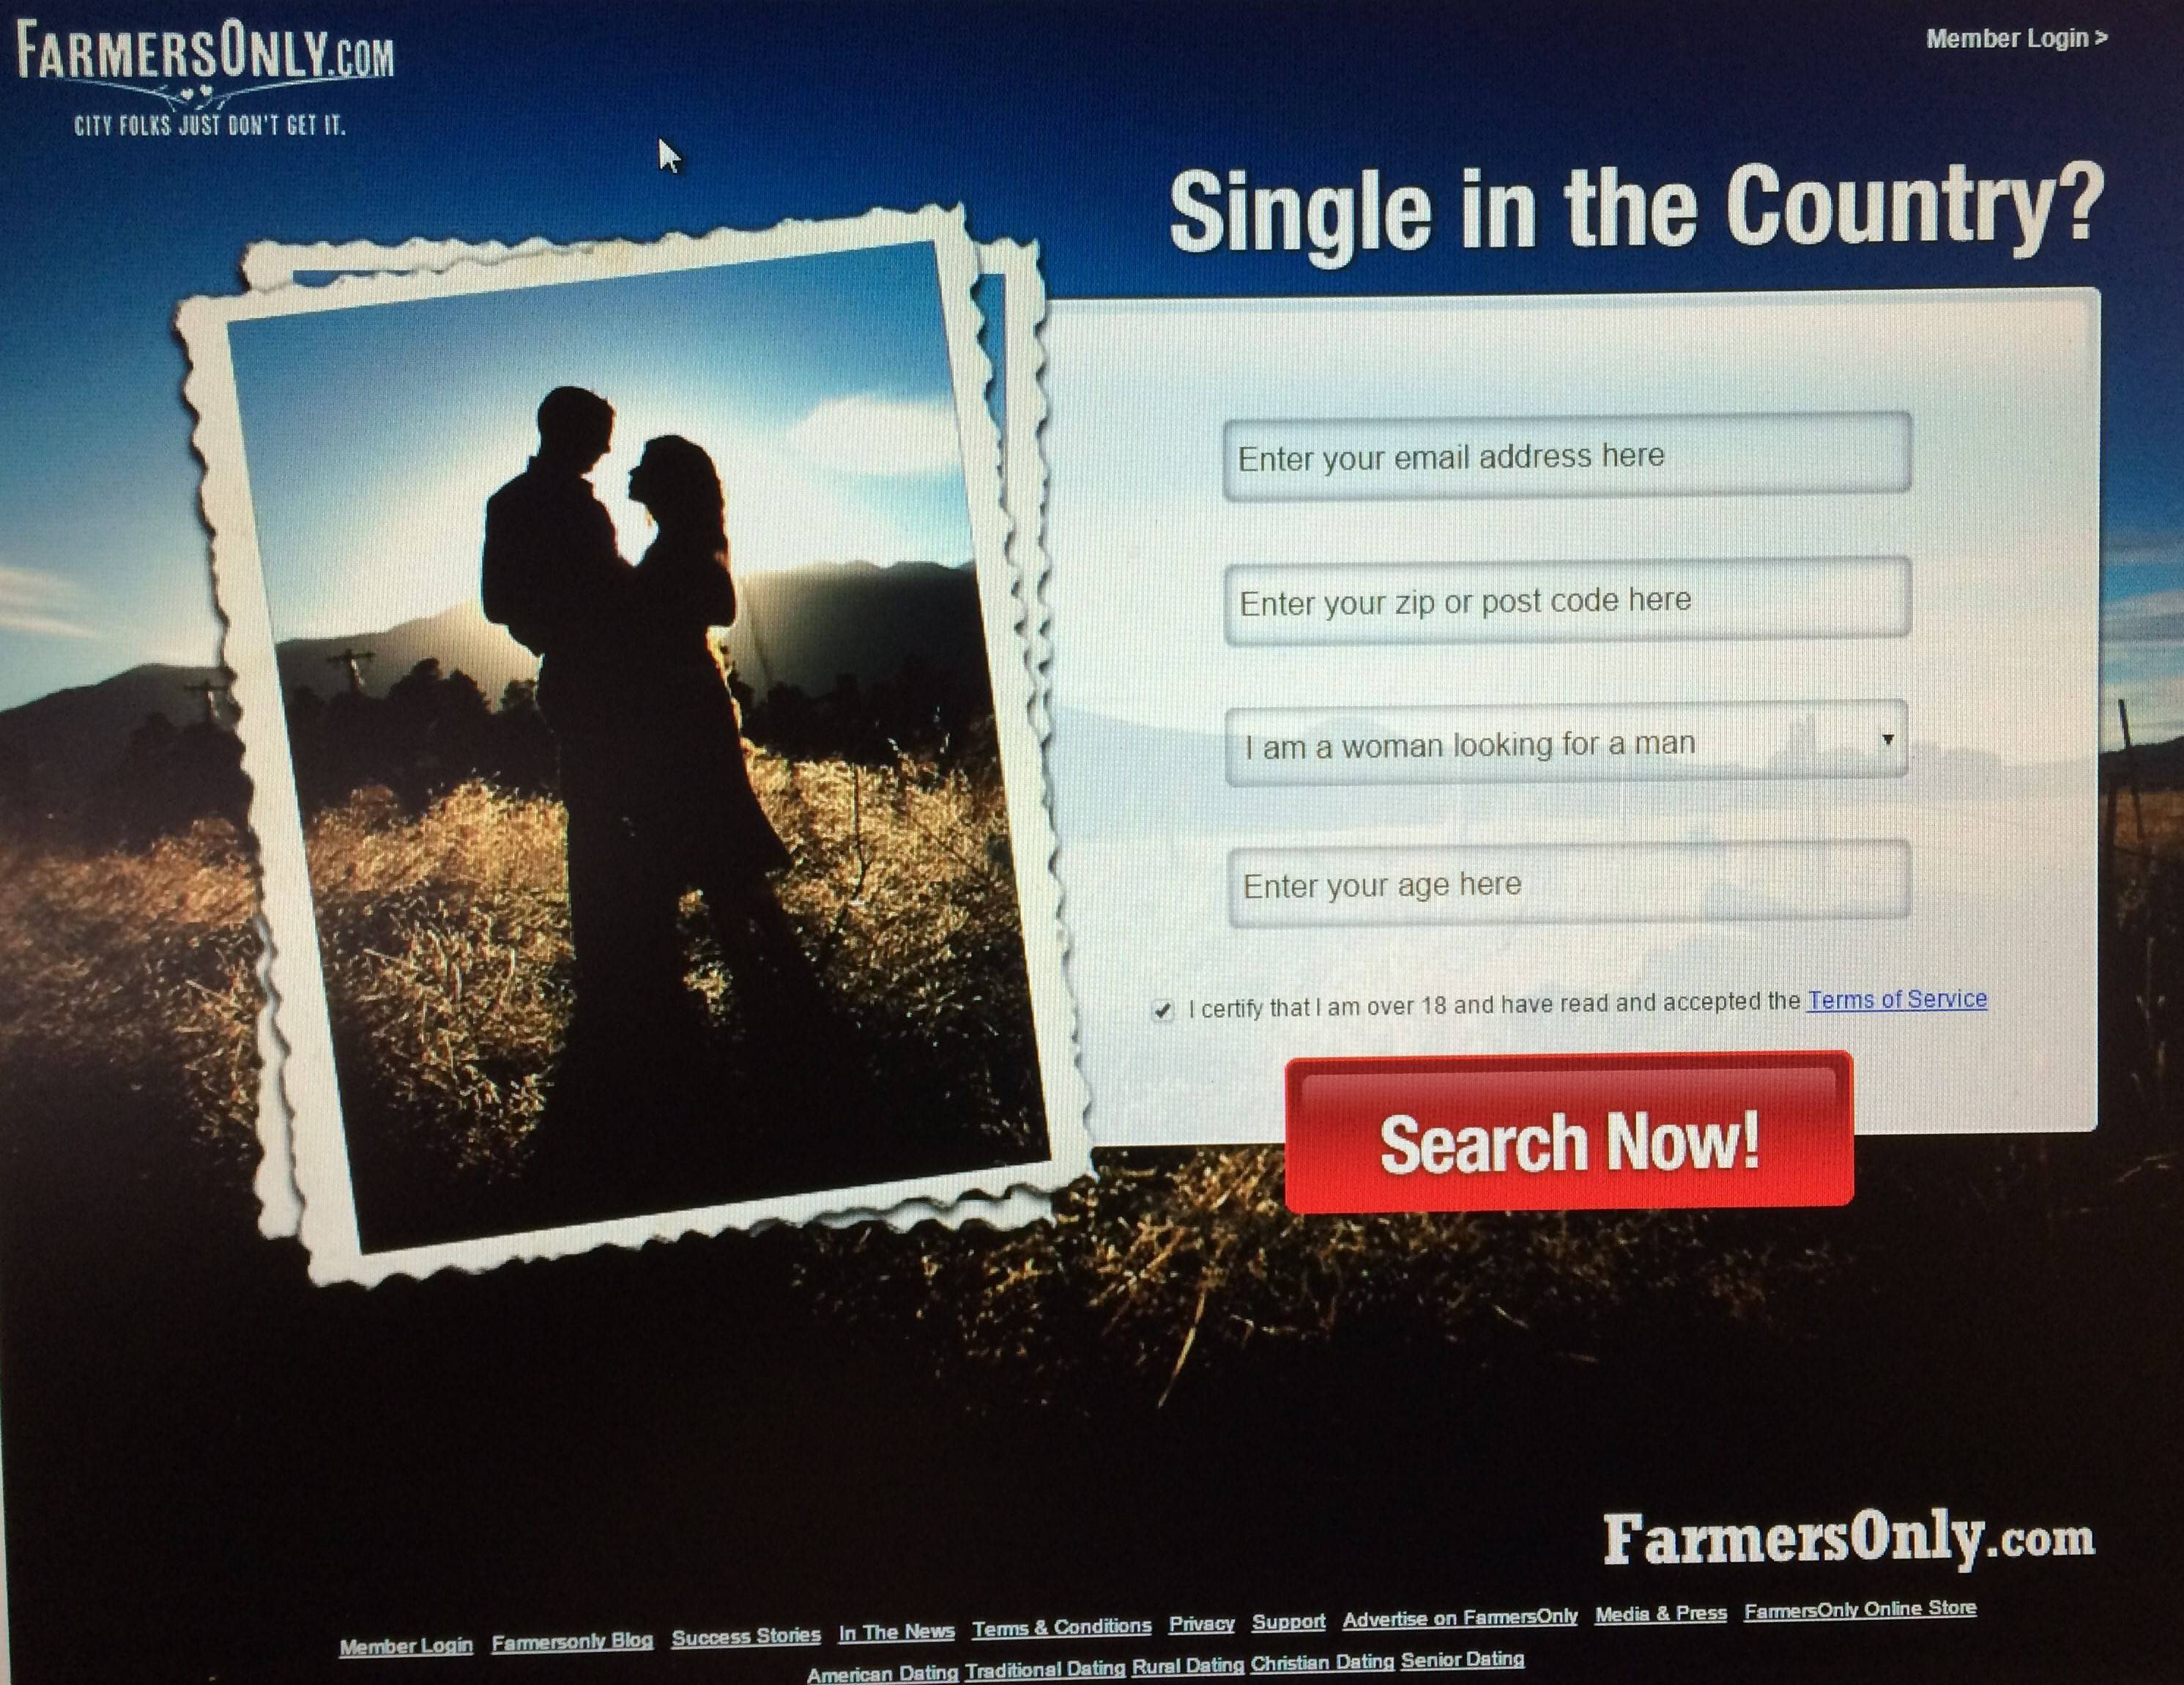 constable singles & personals Plentyoffish dating forums are a place to meet singles and get dating advice or share dating experiences etc hopefully you will all have fun meeting singles and try out this online dating thing.